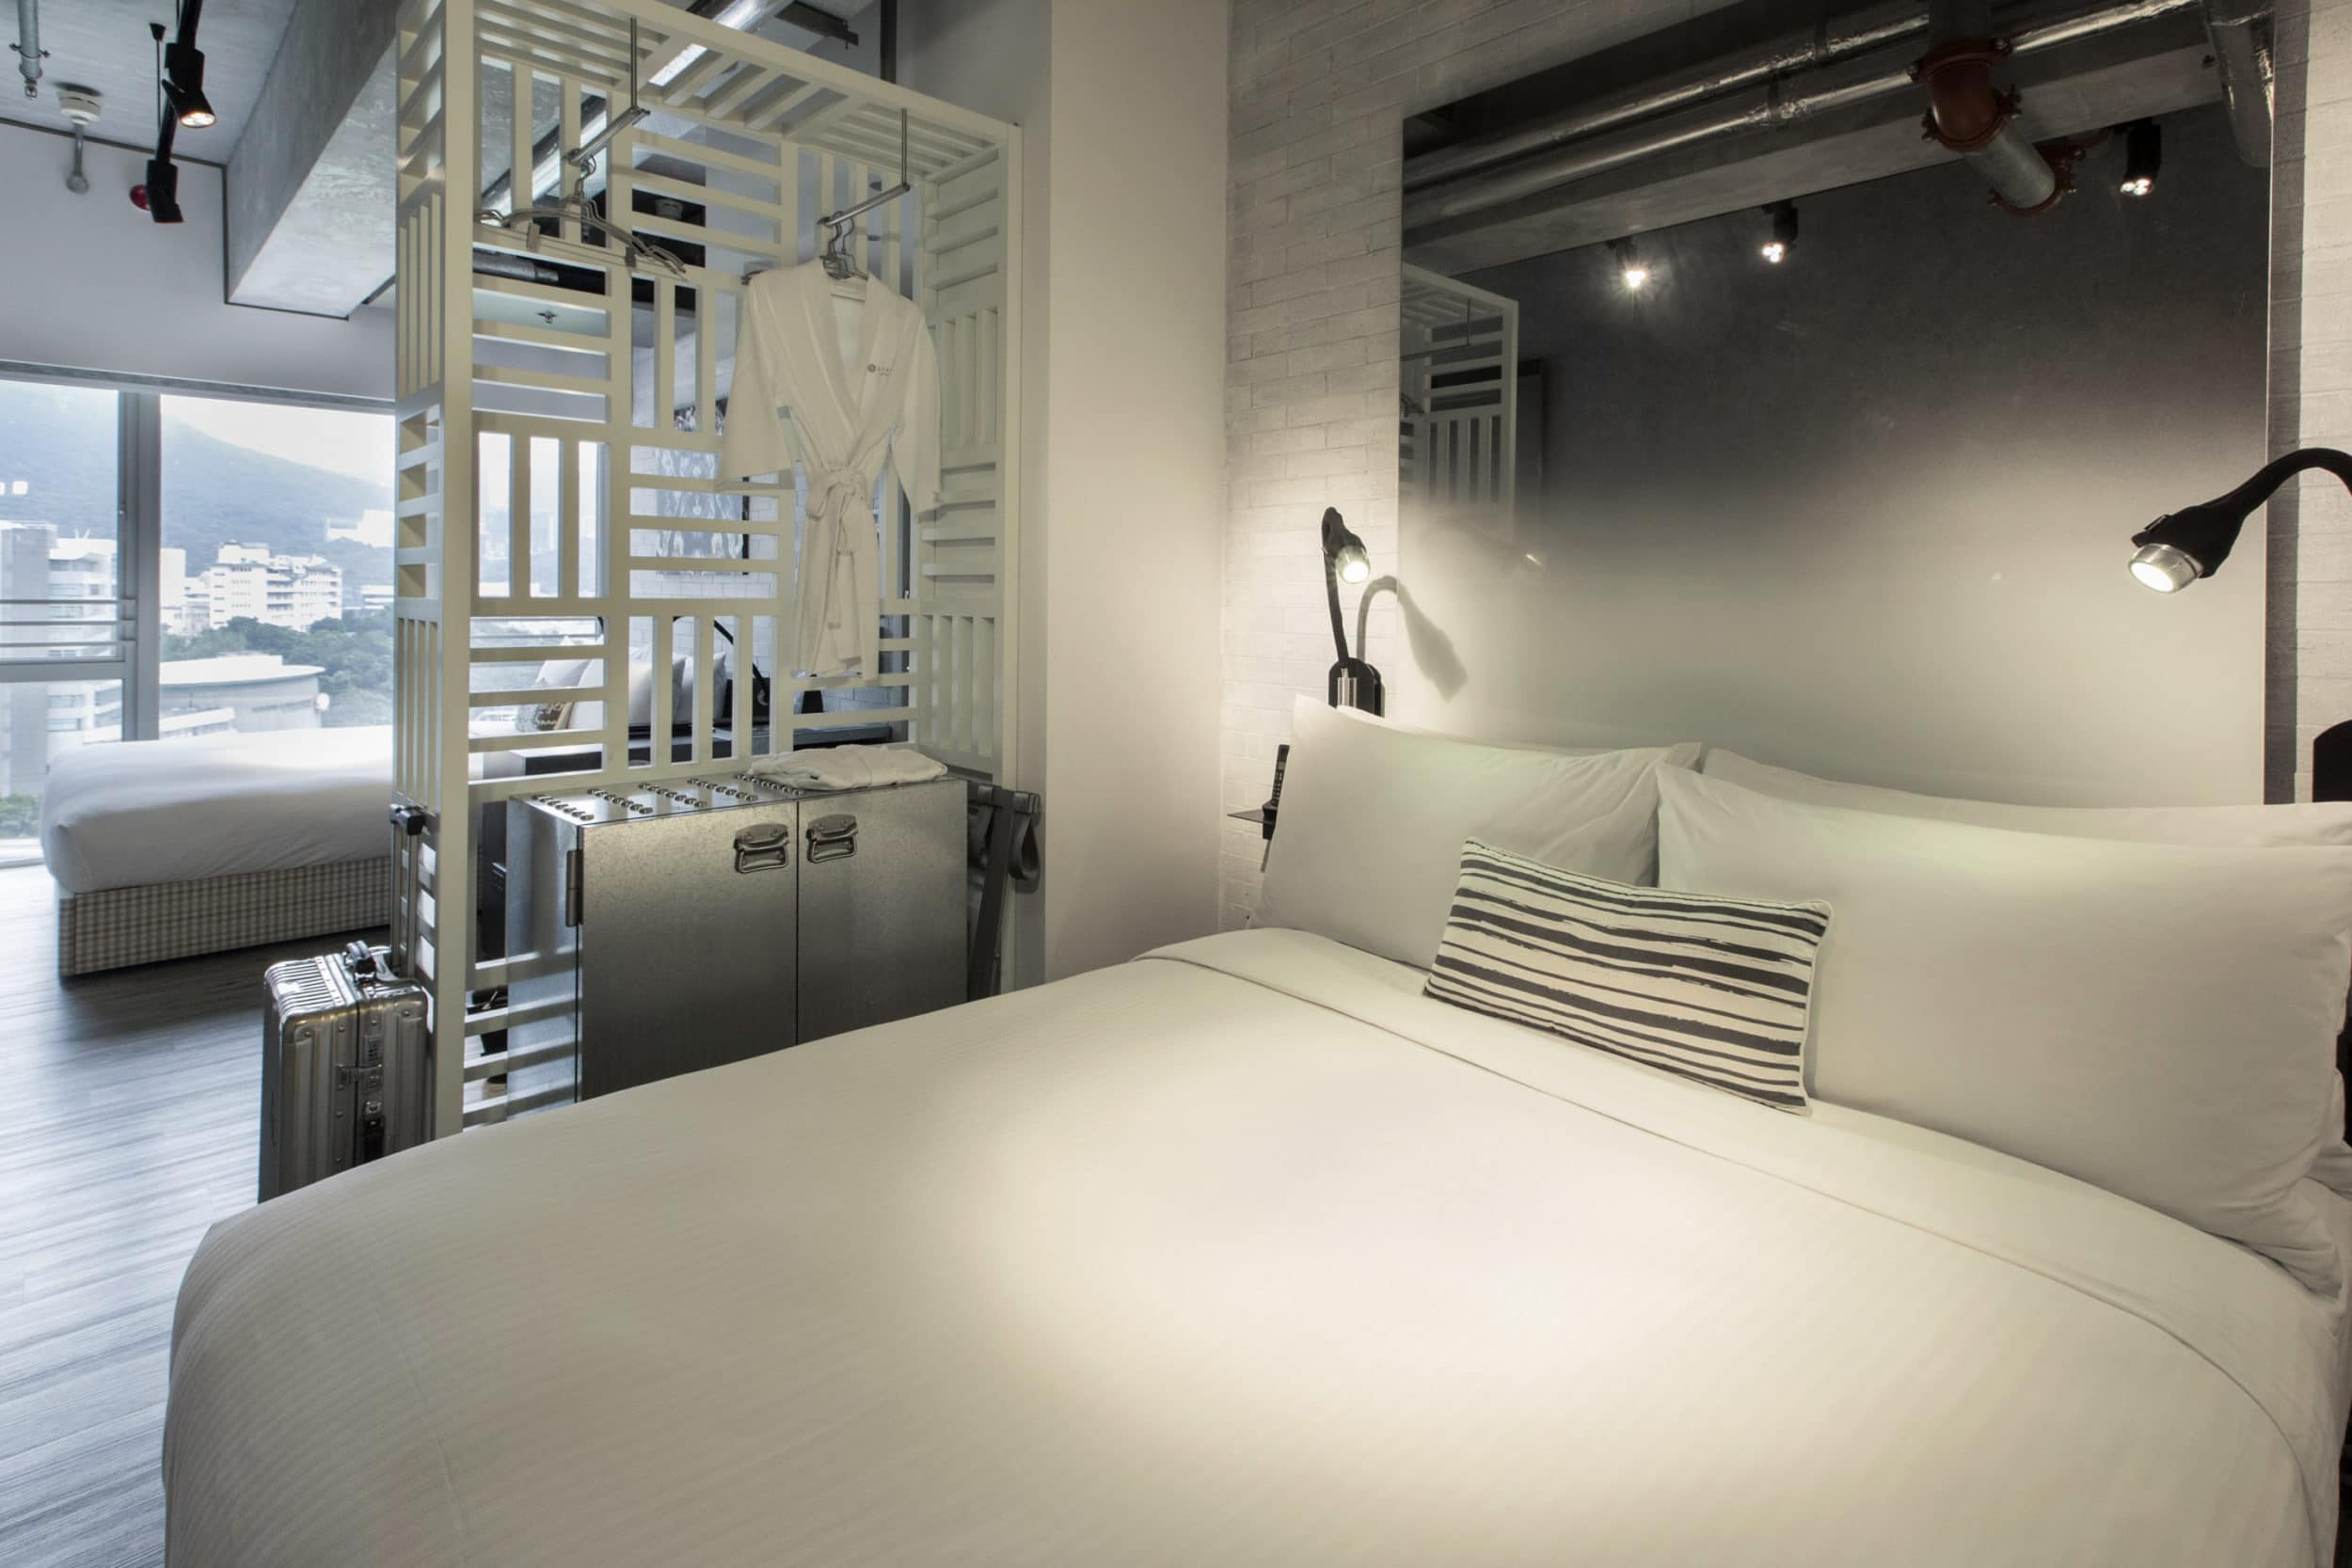 Ovolo Southside is a Hong Kong family hotel near Ocean Park